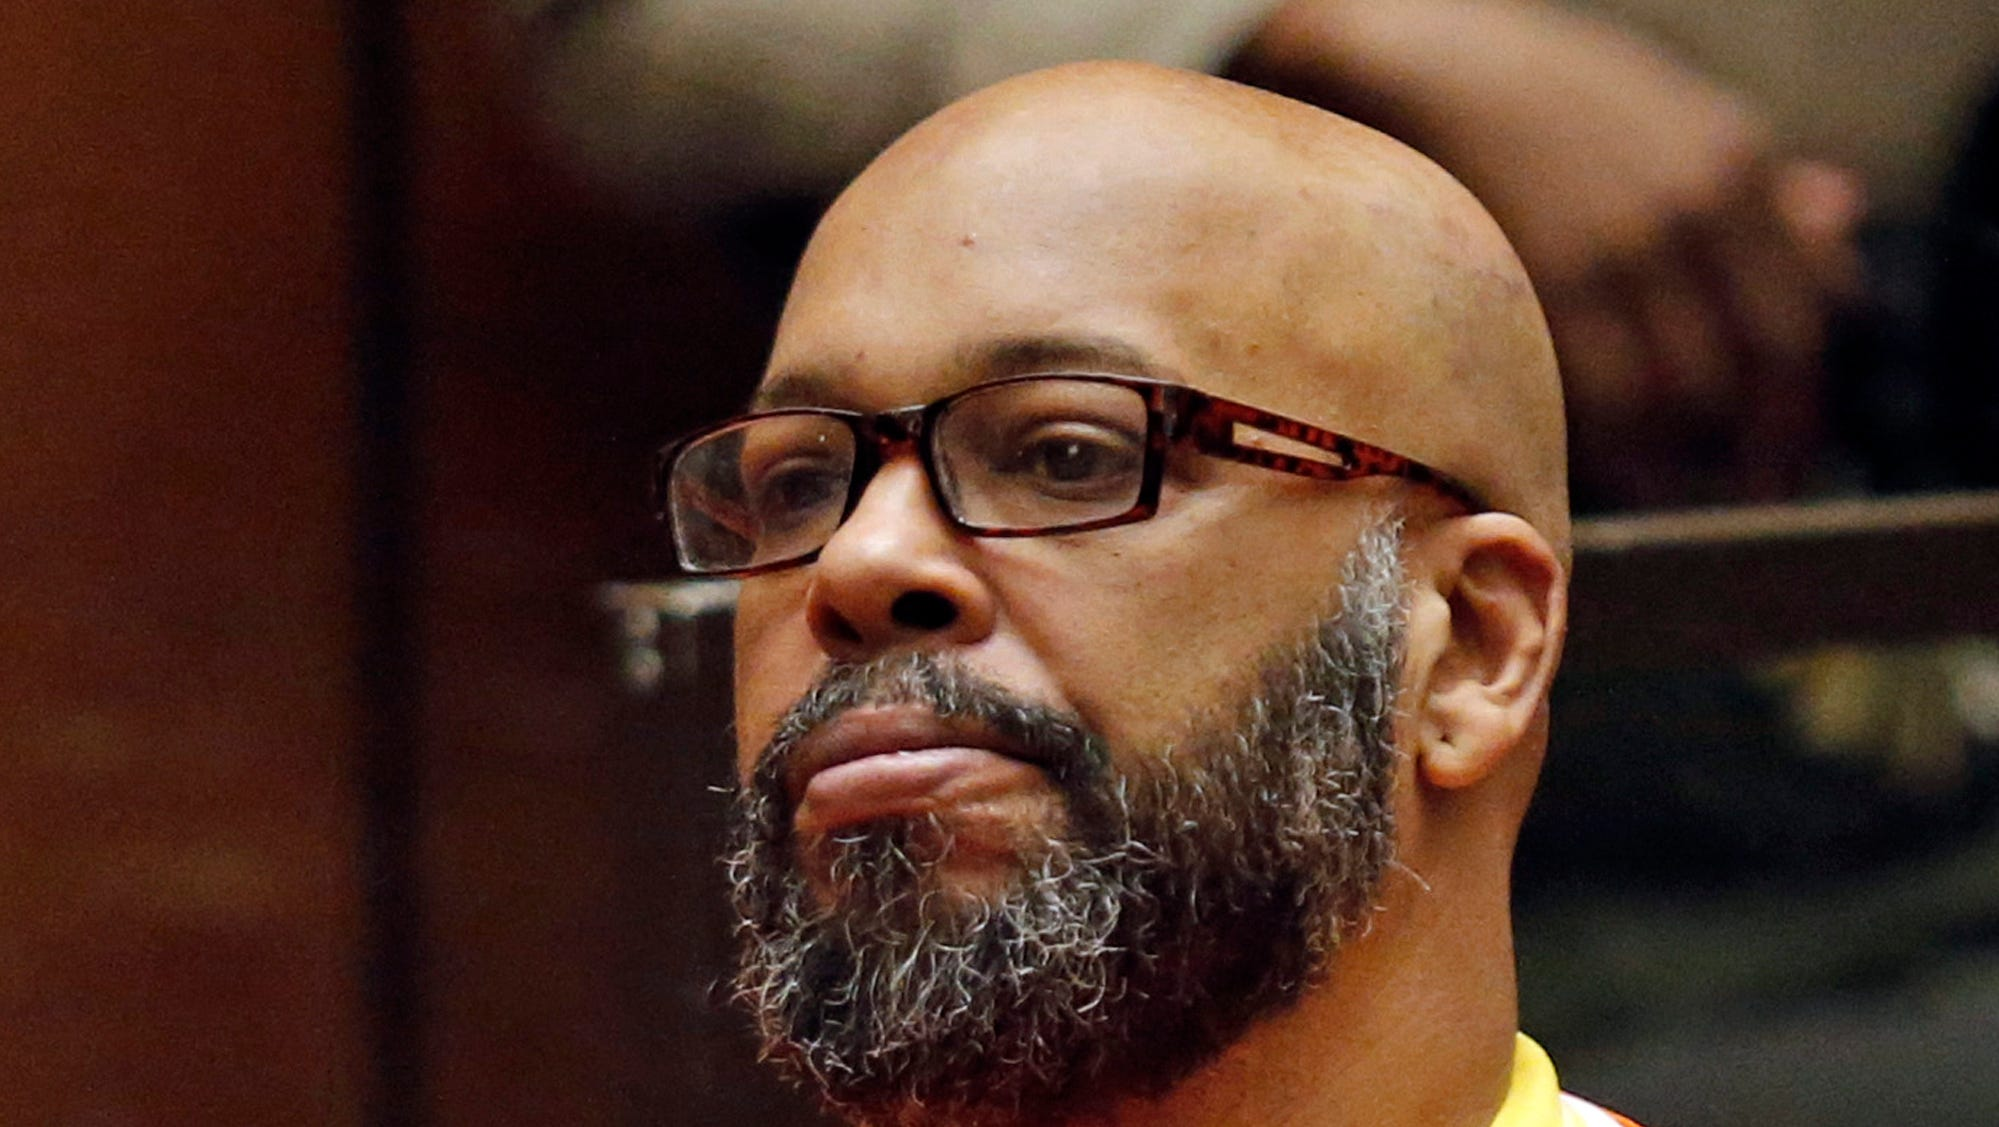 """Marion Hugh """"Suge"""" Knight sits for a hearing in his murder case in Superior Court in Los Angeles. Knight has pleaded no contest to voluntary manslaughter and after he ran over two men, killing one, nearly four years ago. The Death Row Records co-founder entered the plea Thursday in Los Angeles Superior Court and has agreed to serve 28 years in prison."""